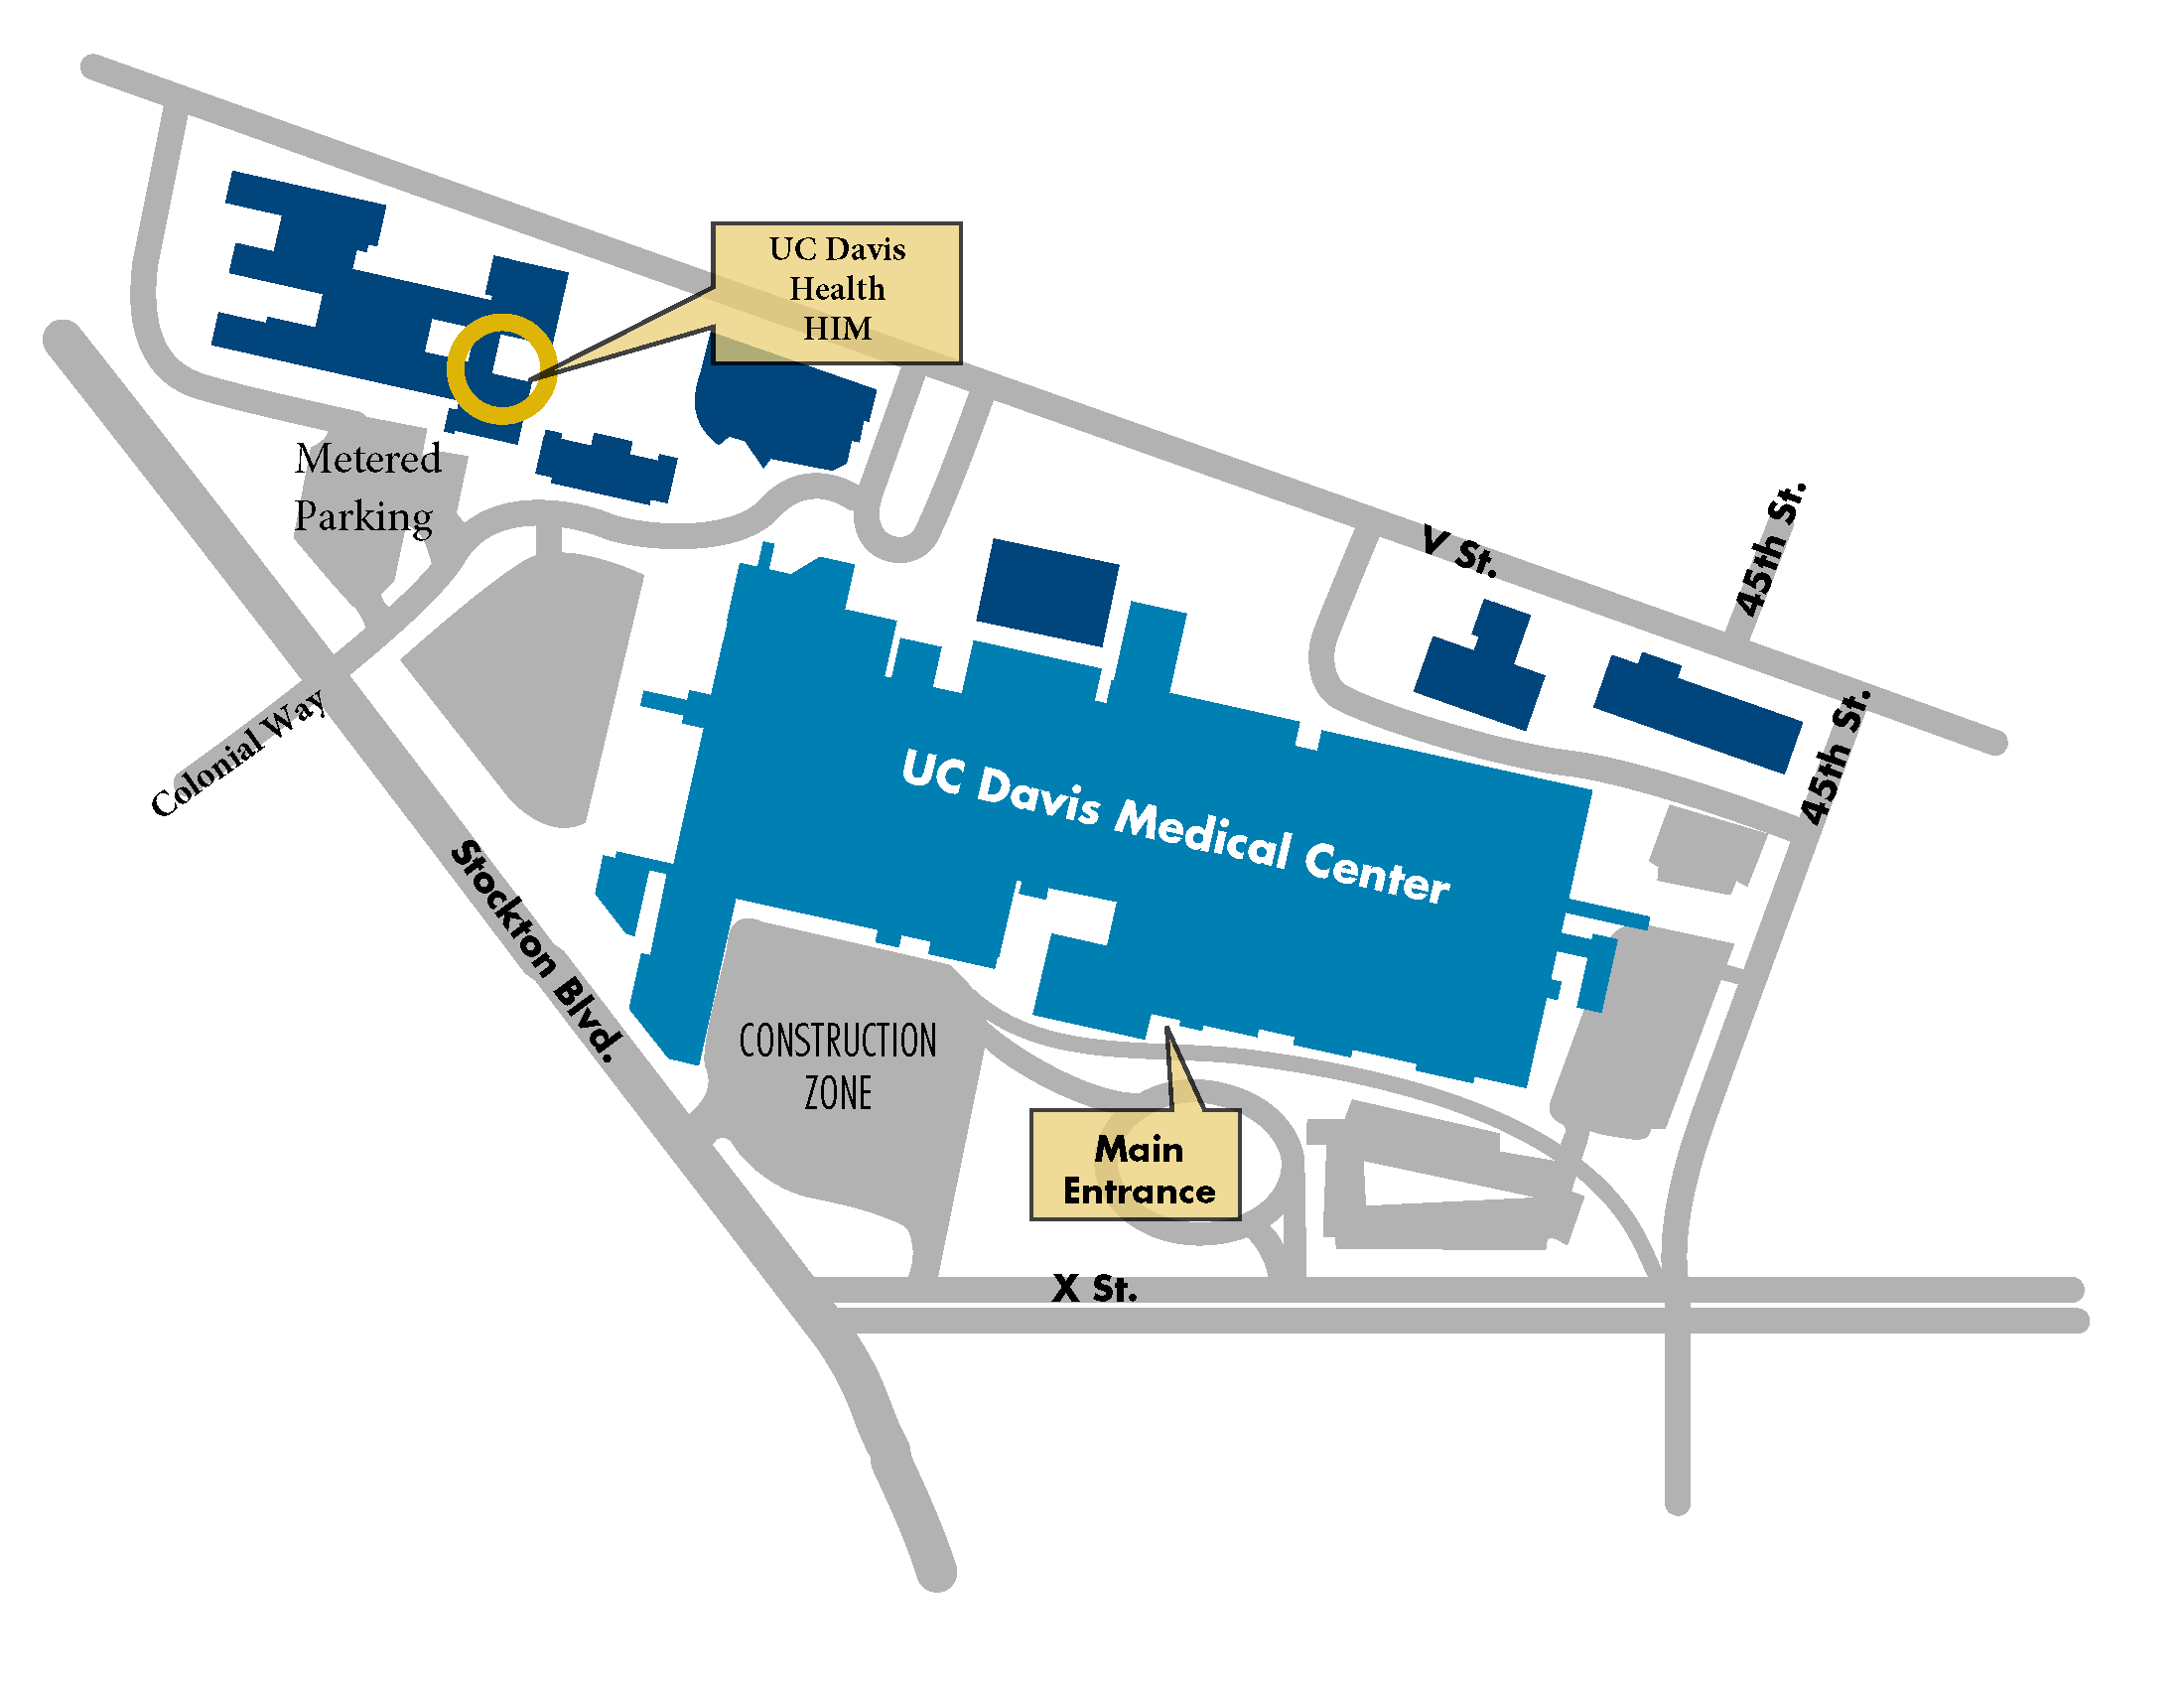 UC Davis Health - Health Information Management Location